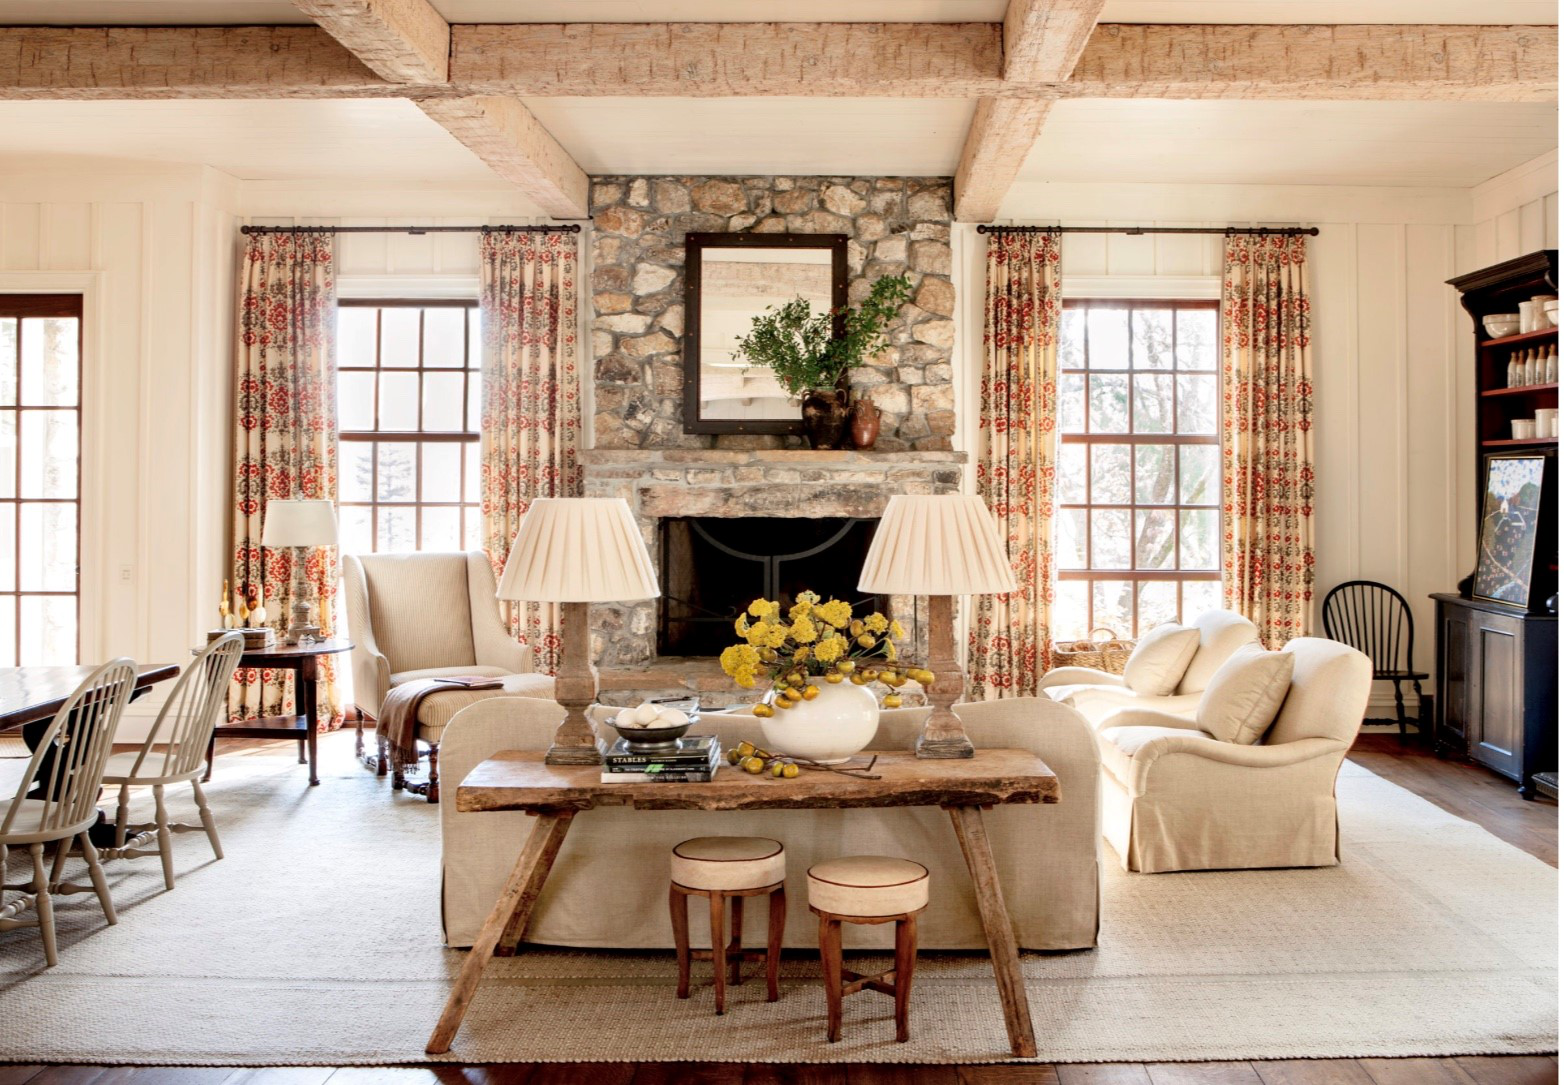 Family Room Featuring Interiors by Suzanne Kasler and Architecture by Spitzmiller and Norris